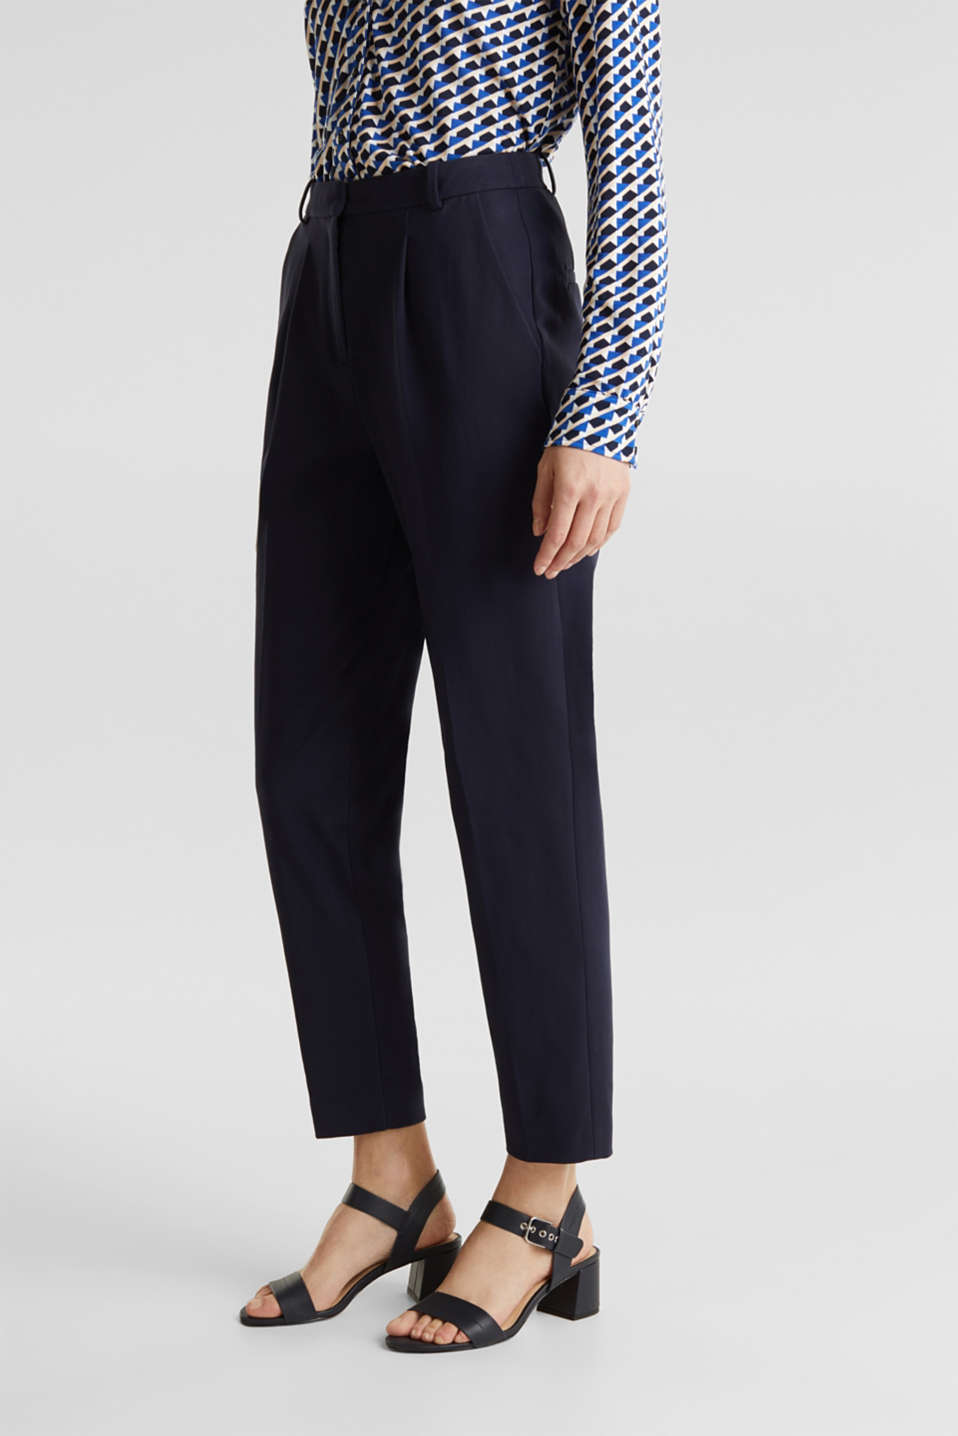 MODERN Mix + Match trousers with a high-rise waist, NAVY, detail image number 6